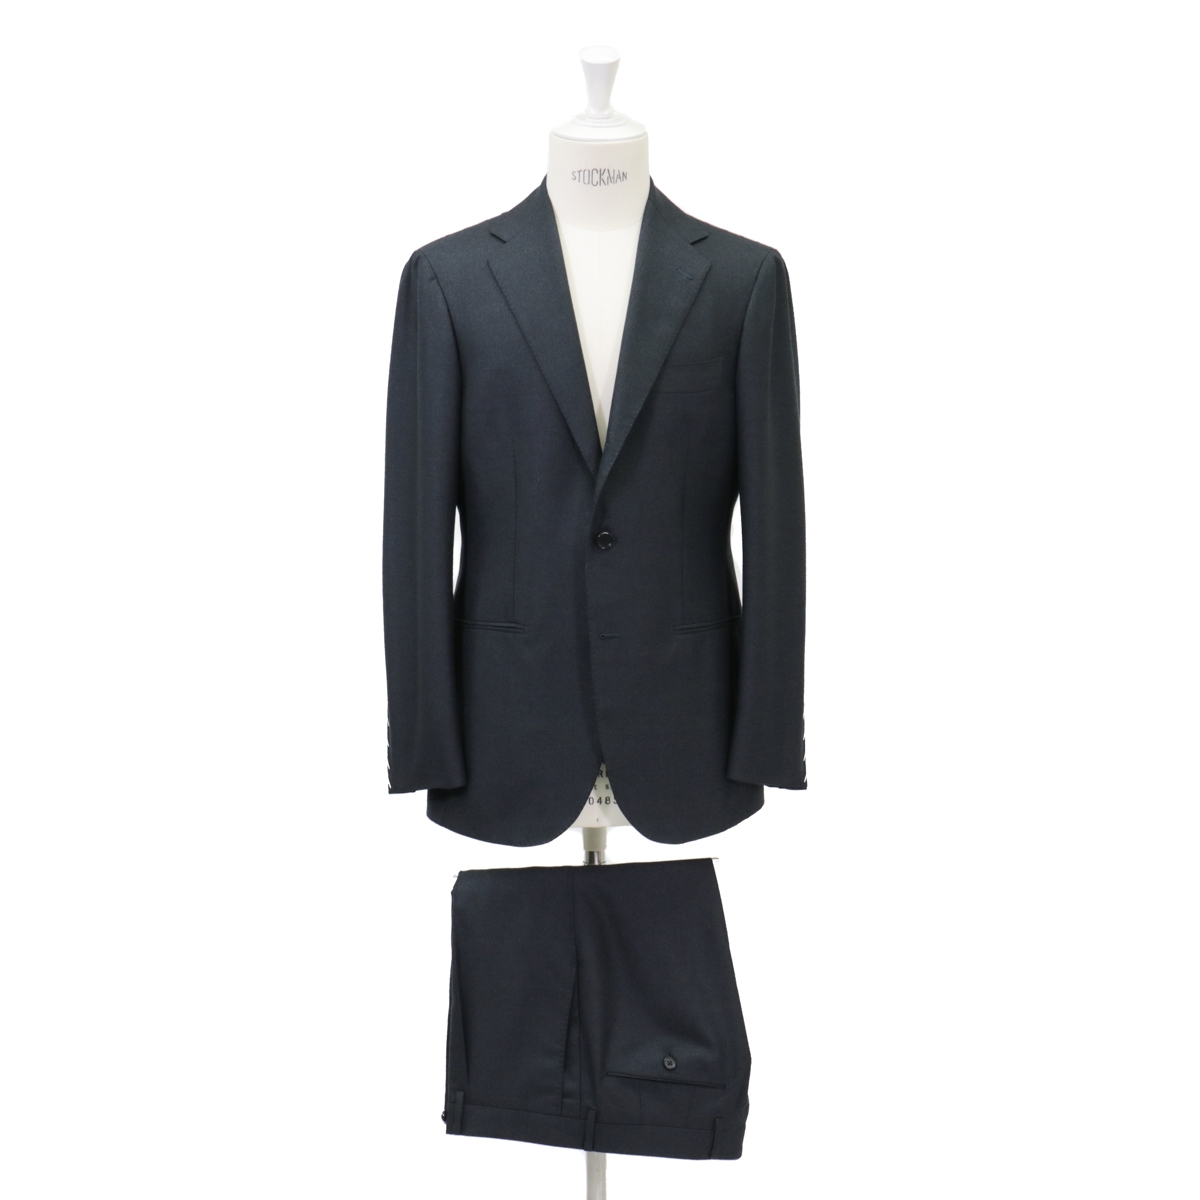 RING JACKET リングヂャケットModel No-253EH S-172HDORMEUIL3Bスーツ【ネイビー】